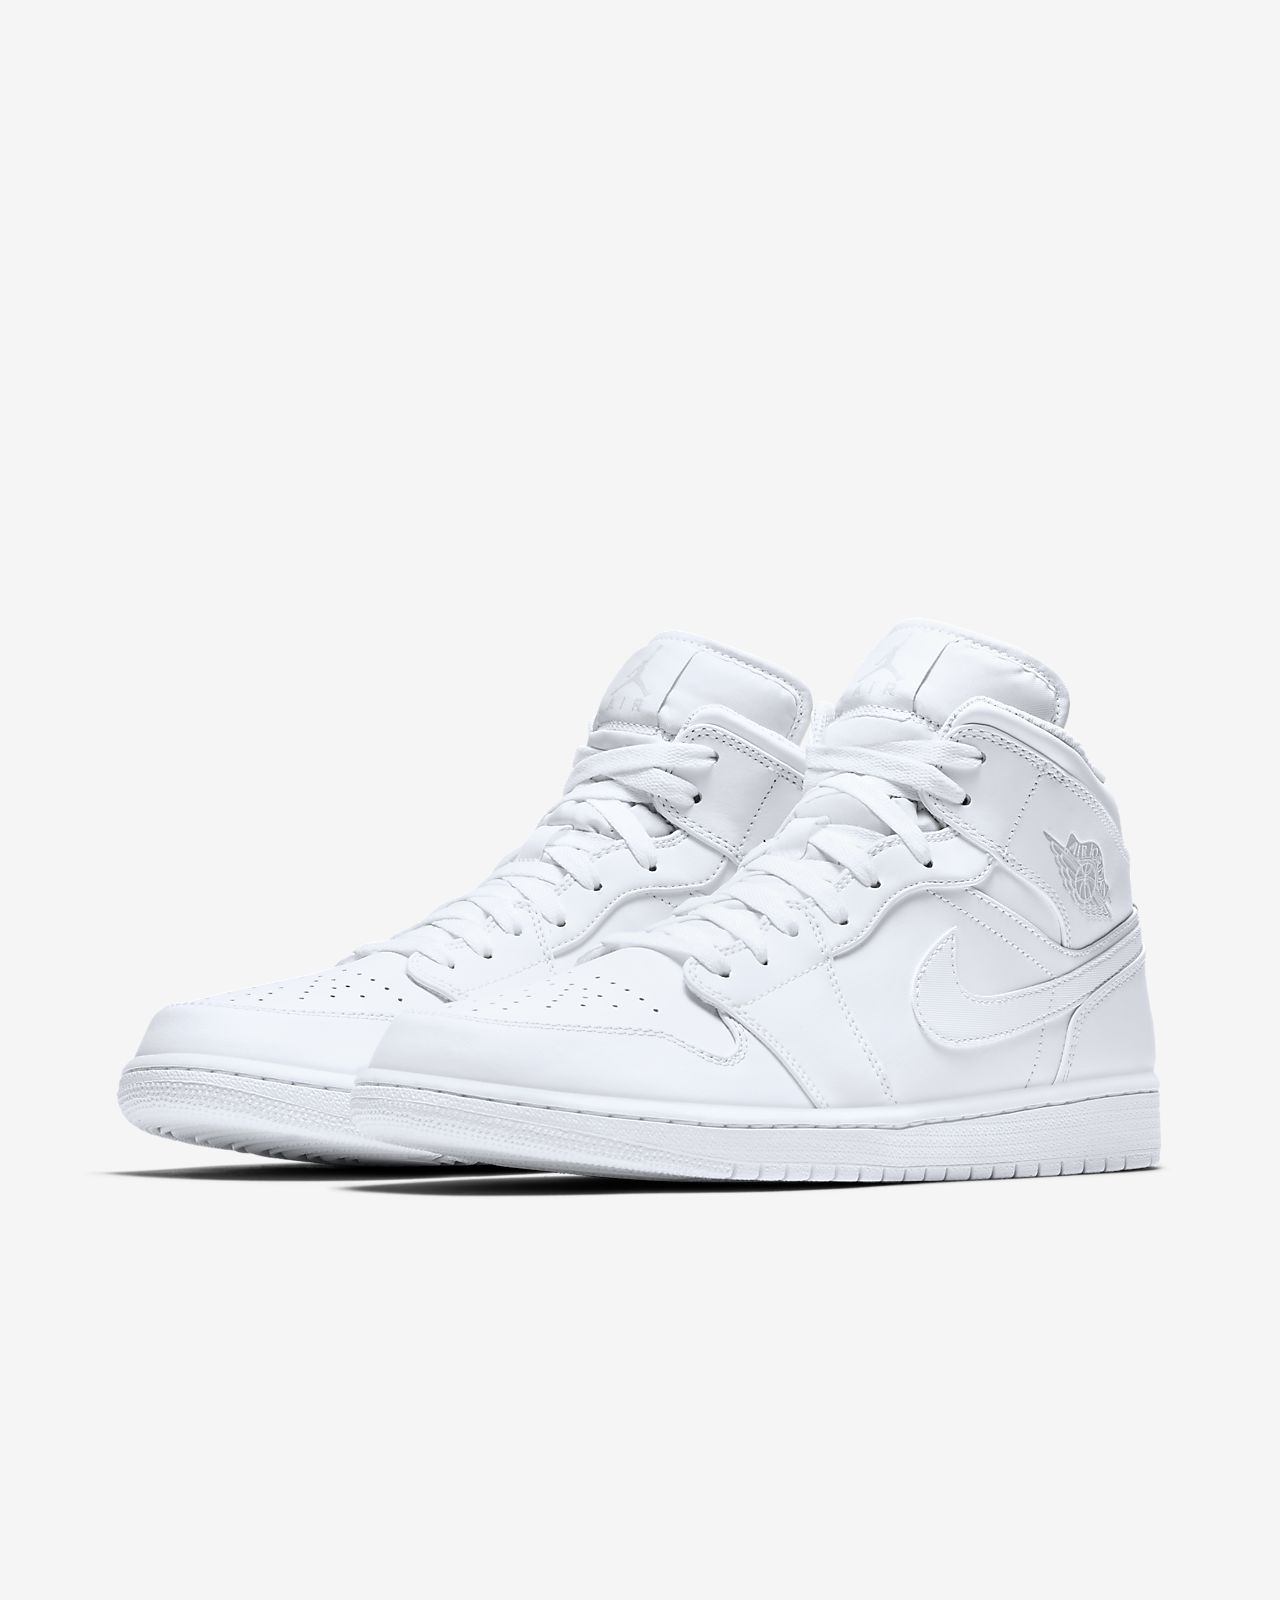 nike air jordan 1 mid men 9.5 nz